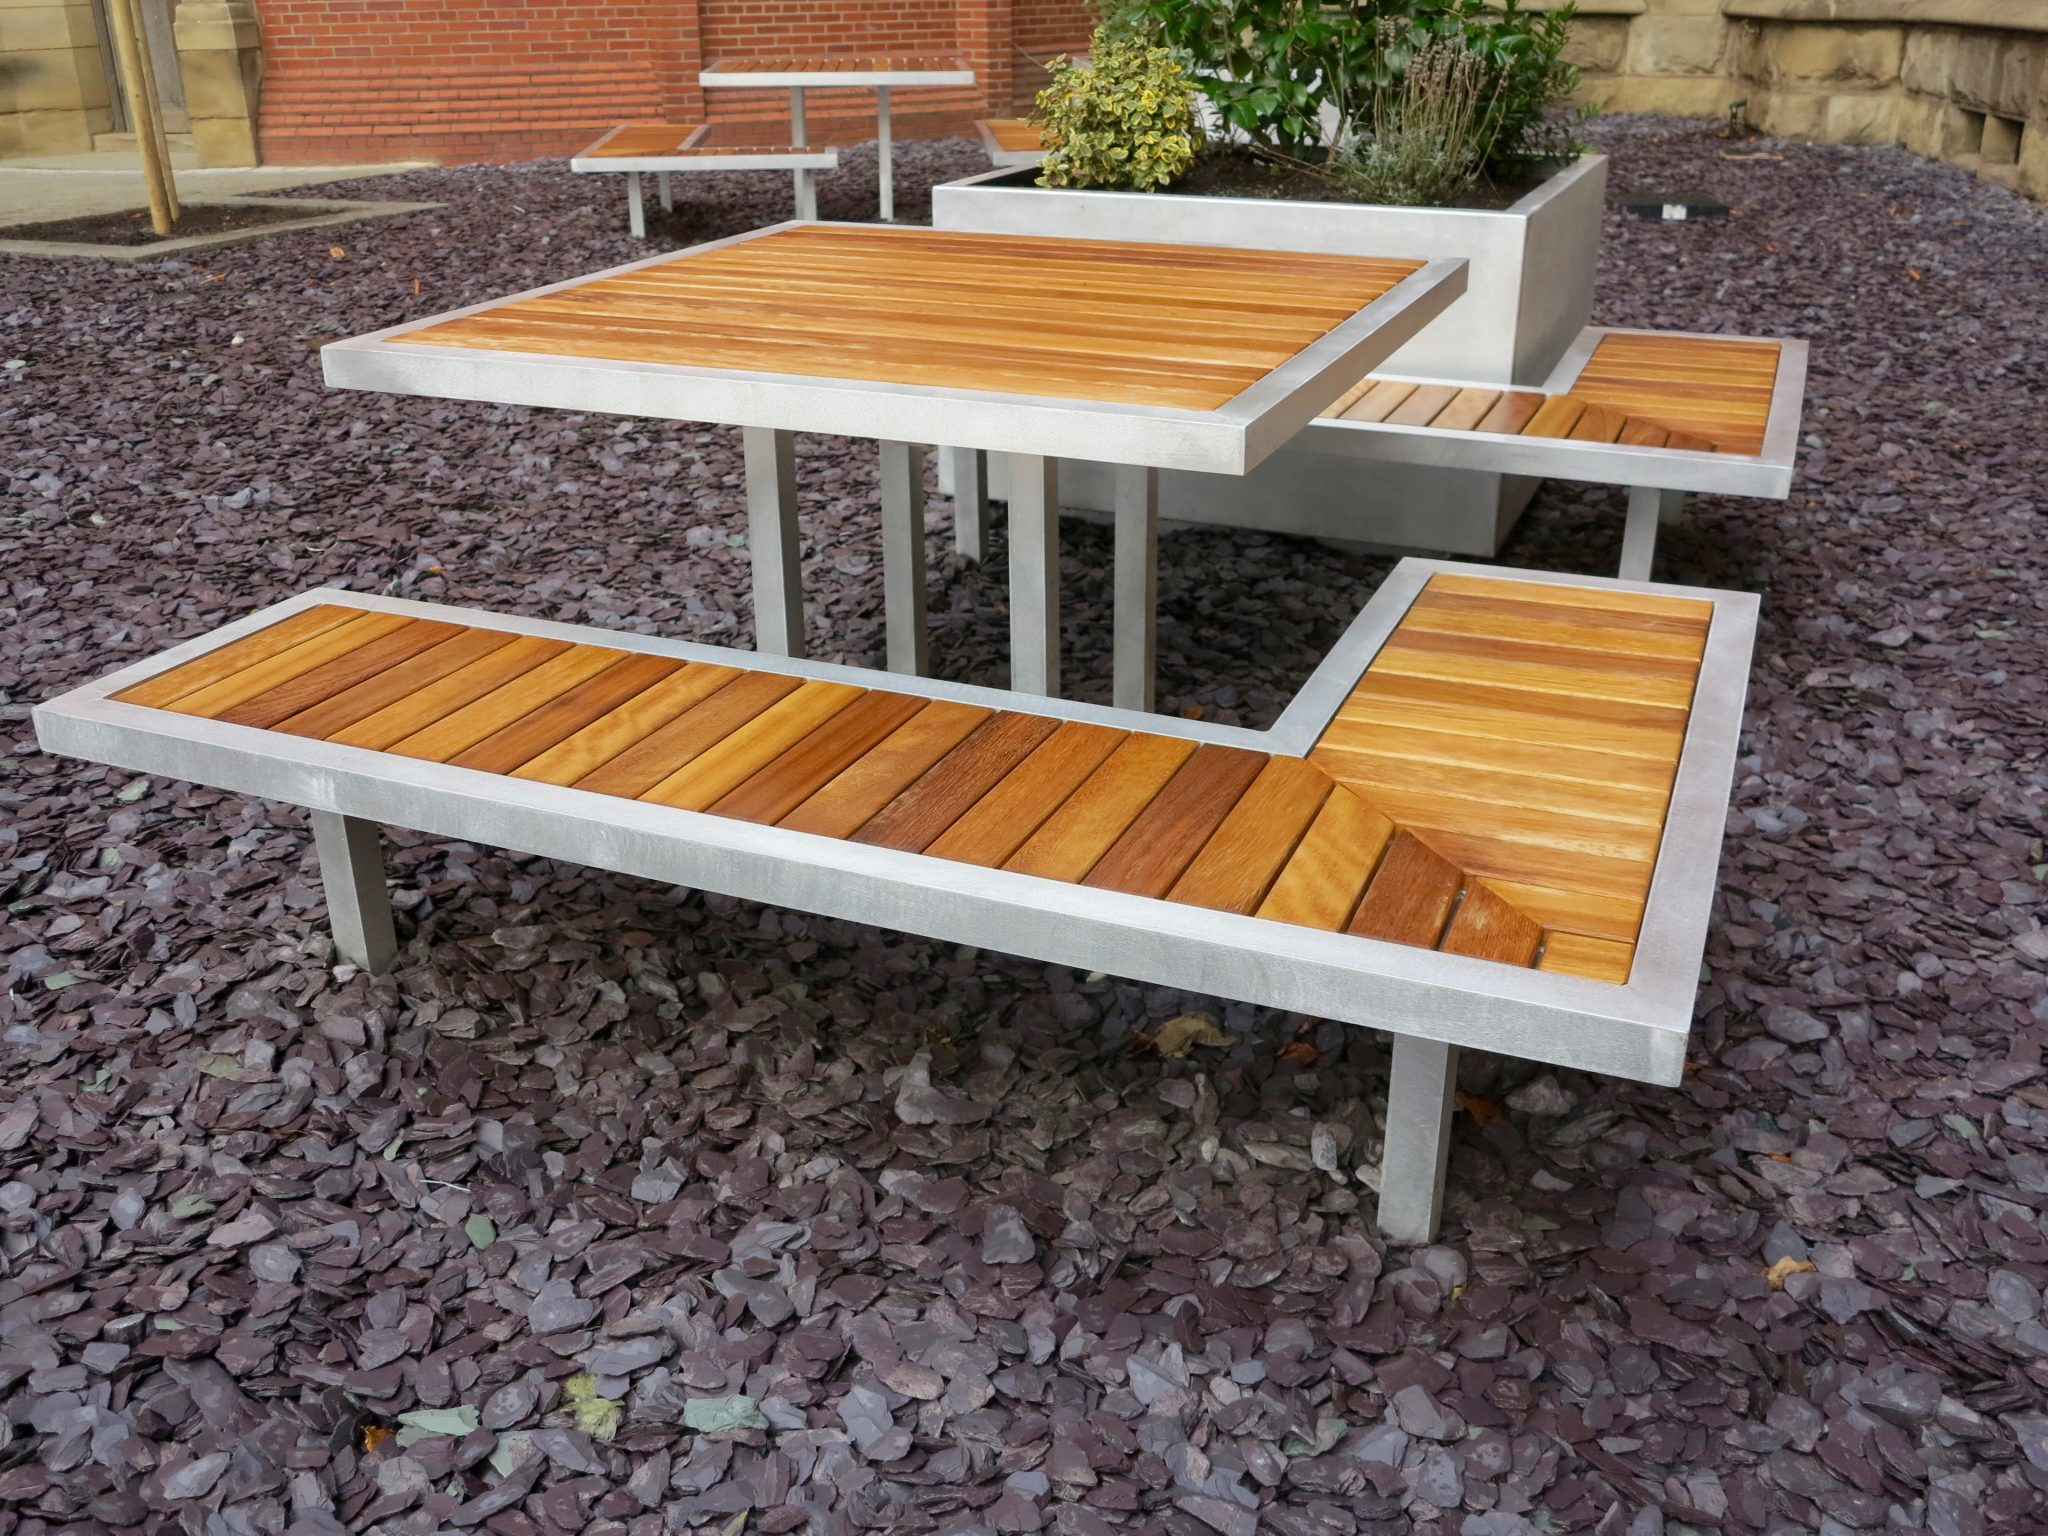 benchmark street furniture campus range. Iroko and aluminium benches